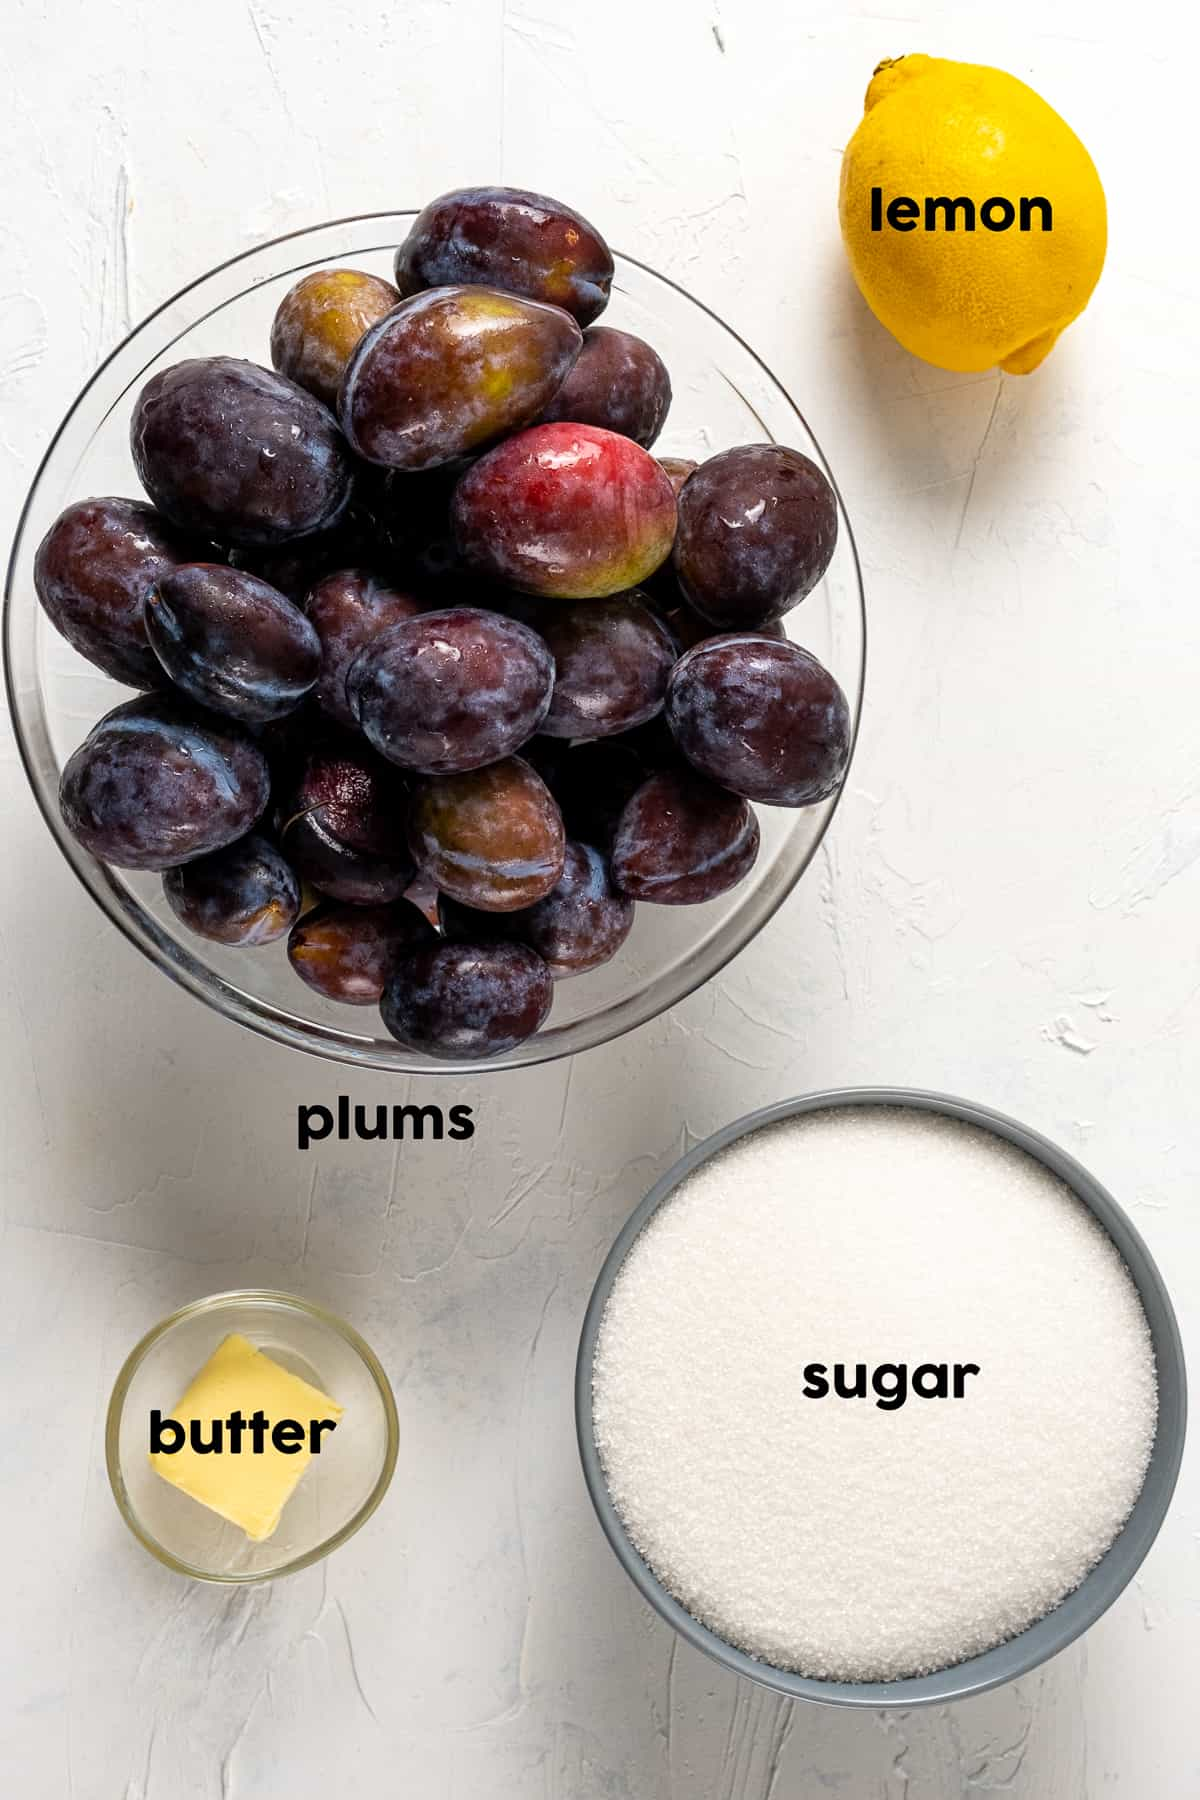 Fresh plums in a large bowl, lemon, sugar and butter on the side.